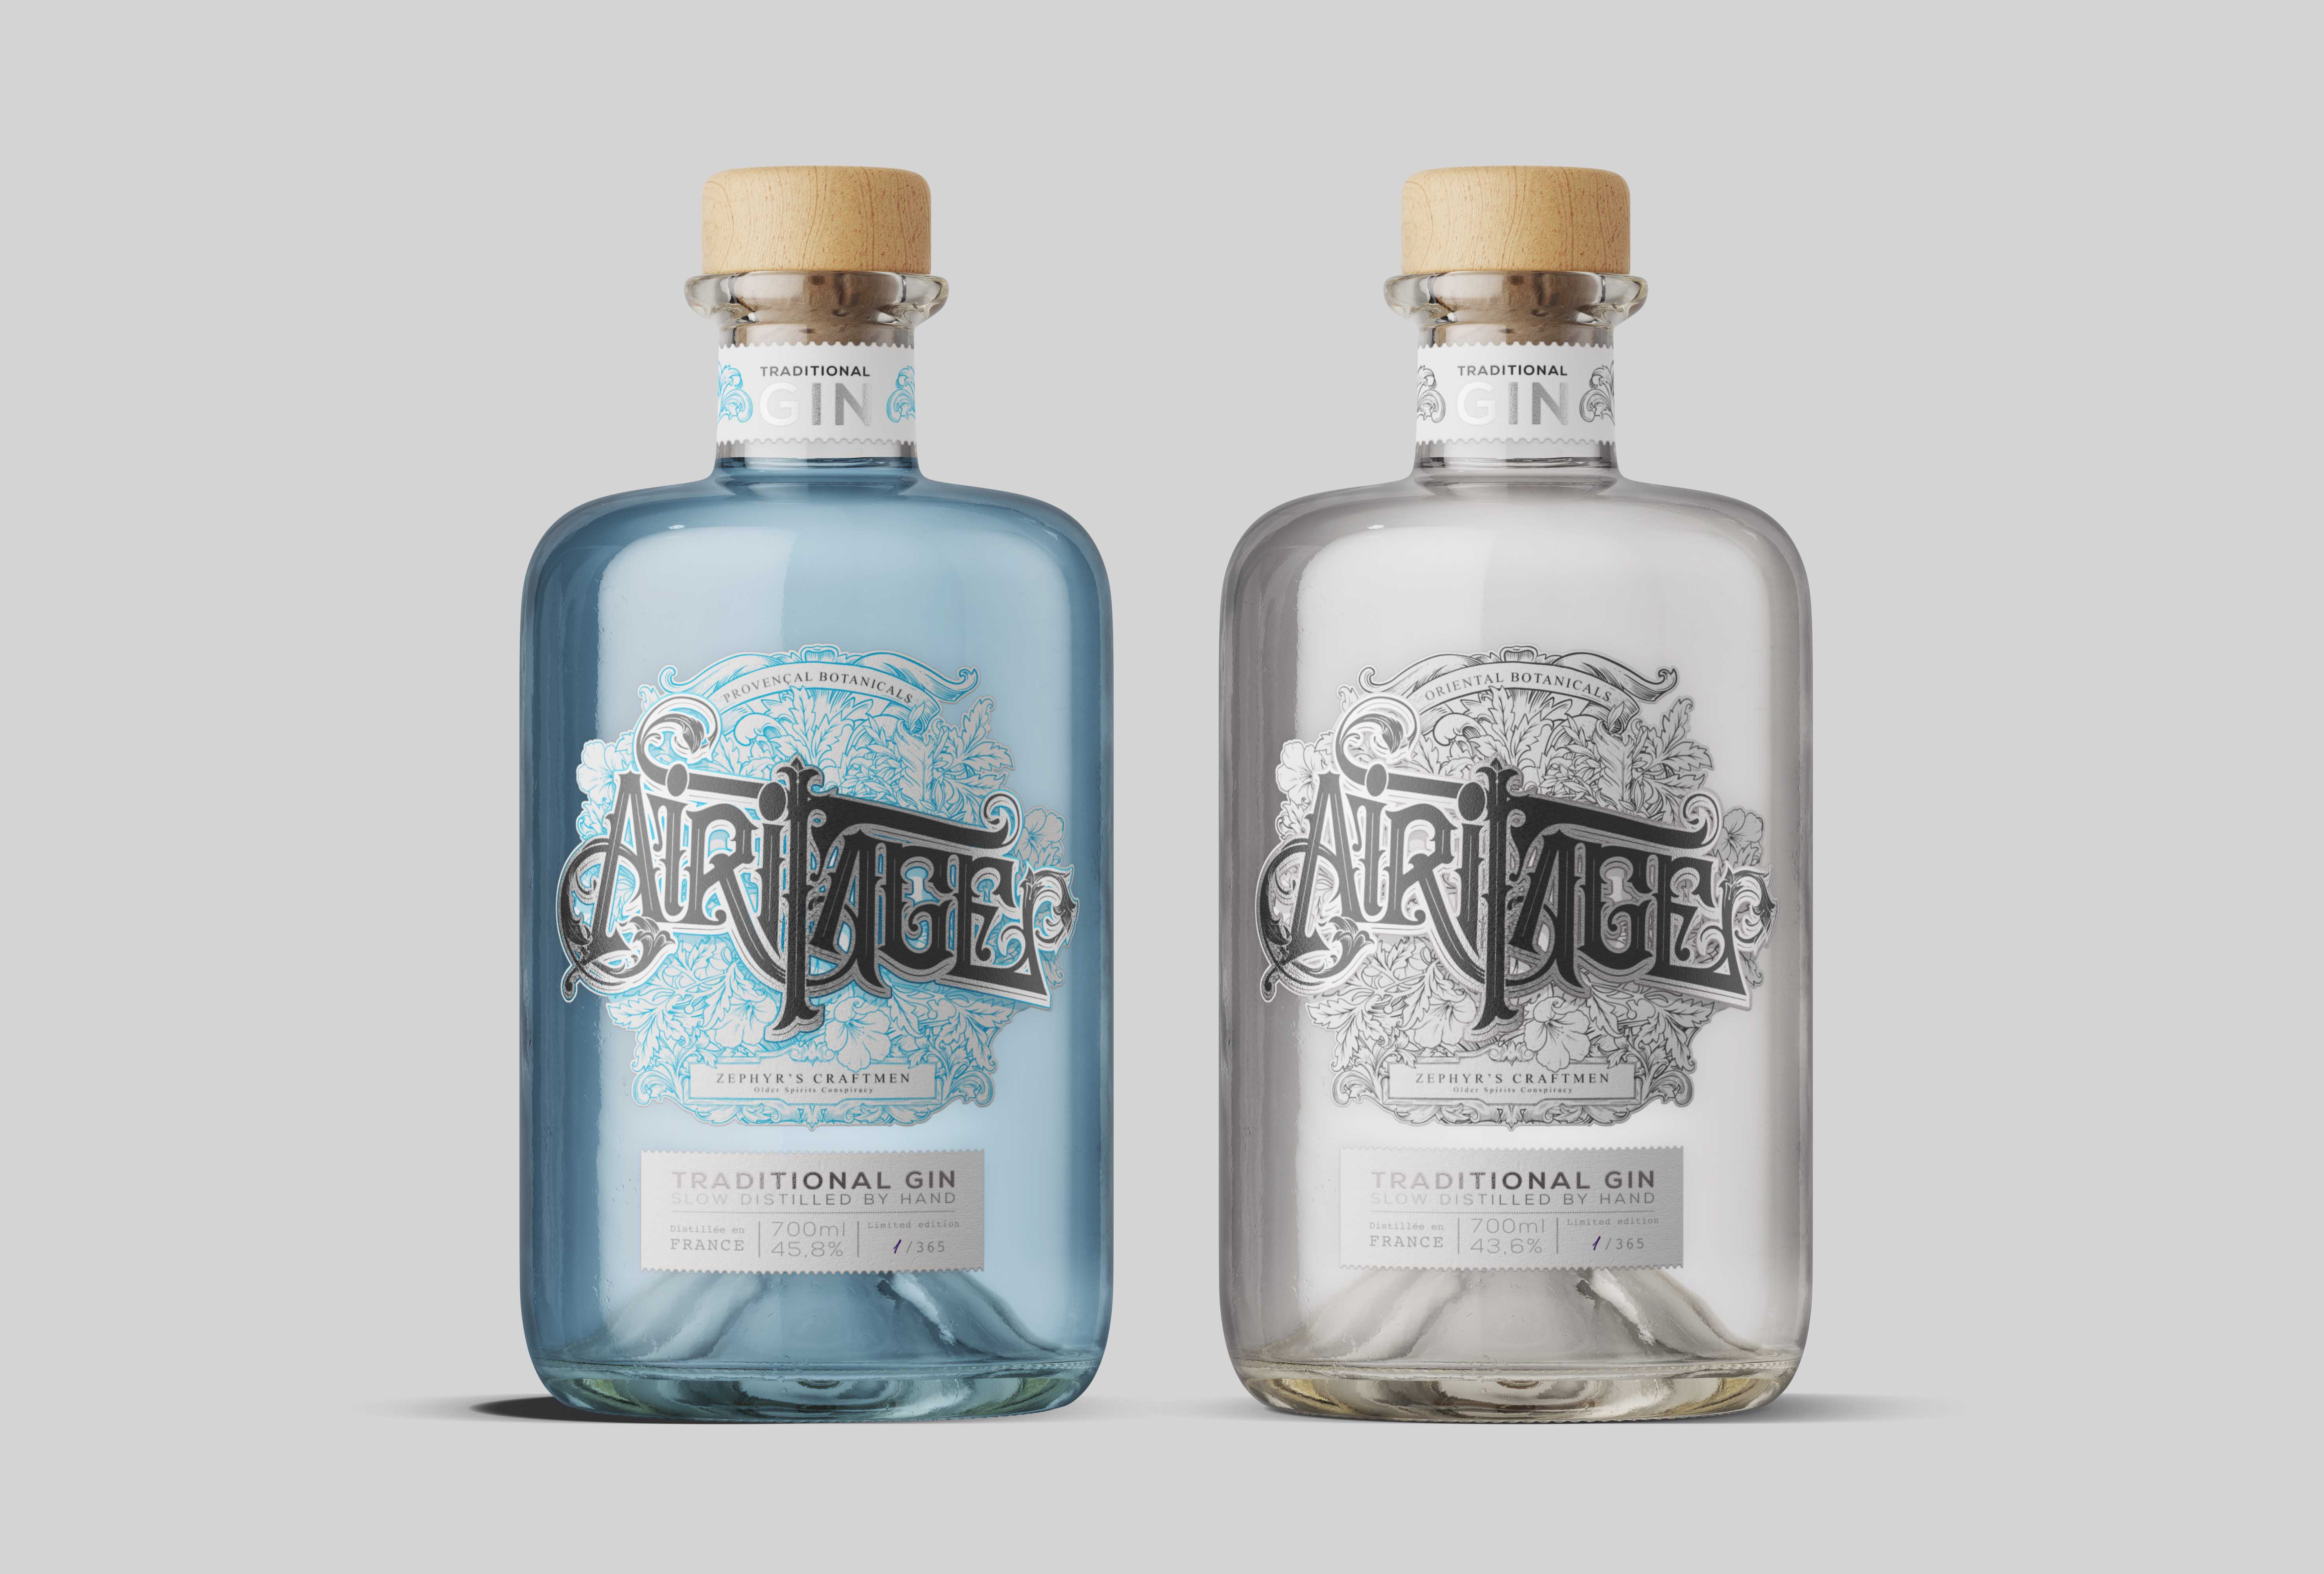 Airitage – Traditional Gin